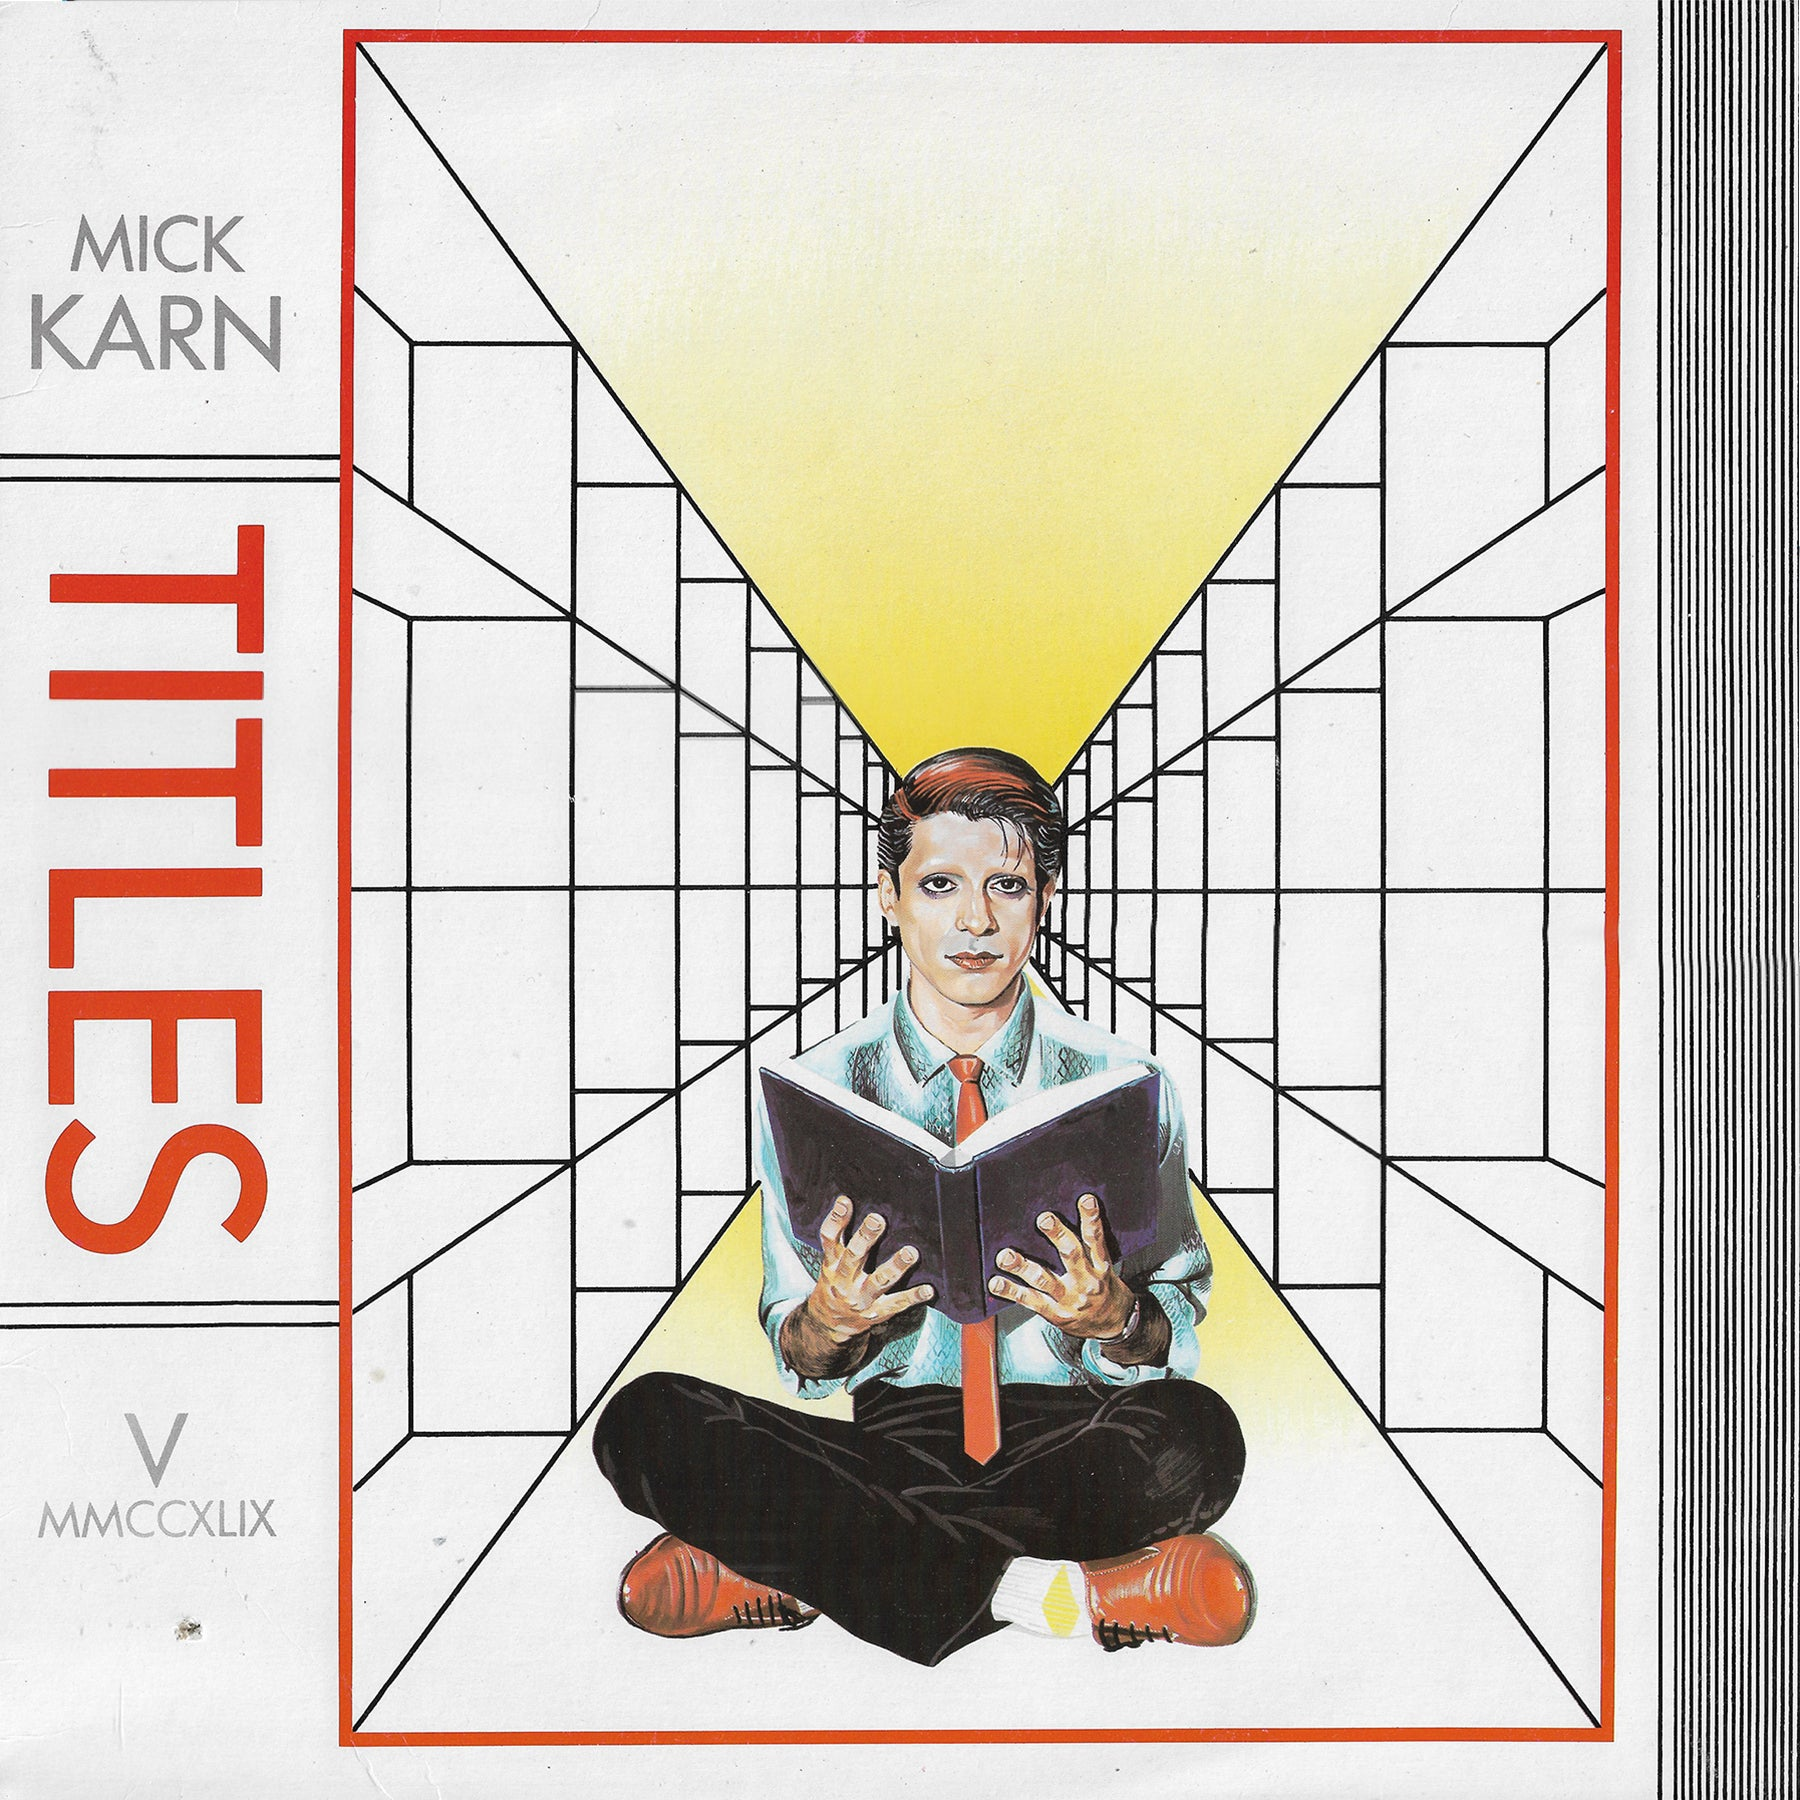 Mick Karn - Titles